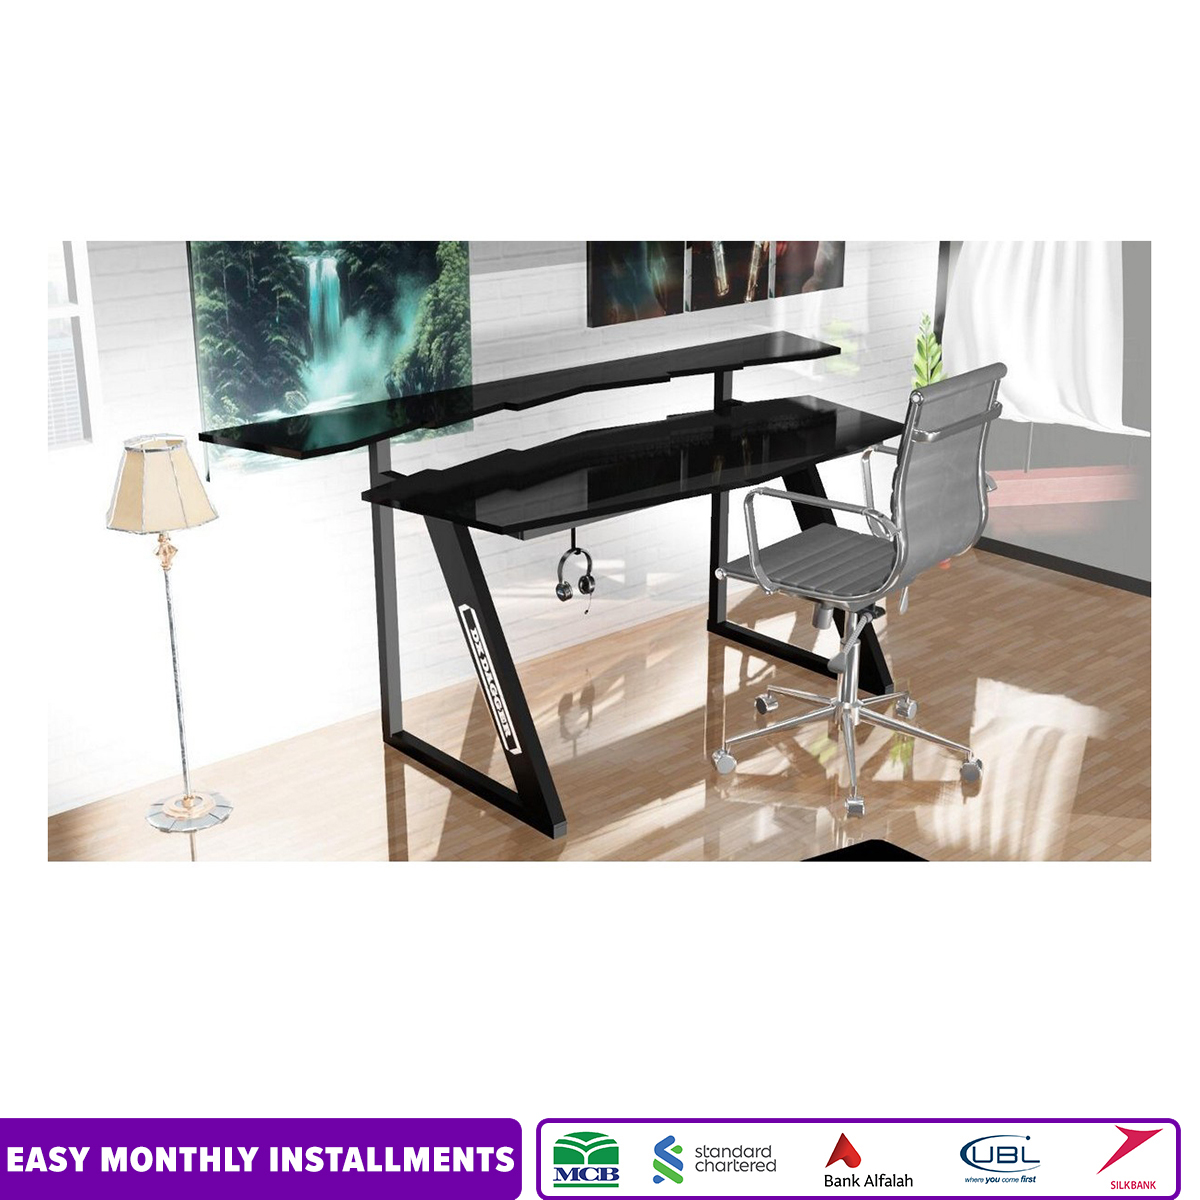 Branded Black Gaming Desk - Studio Table - Computer Laptop Xbox Ps4 Gaming Table - RGB Remote Control Lights - Headphones Holder and Wire Management System - Non Adjustable LED or Monitor Top Stand - Imported High Quality and Sturdy Table